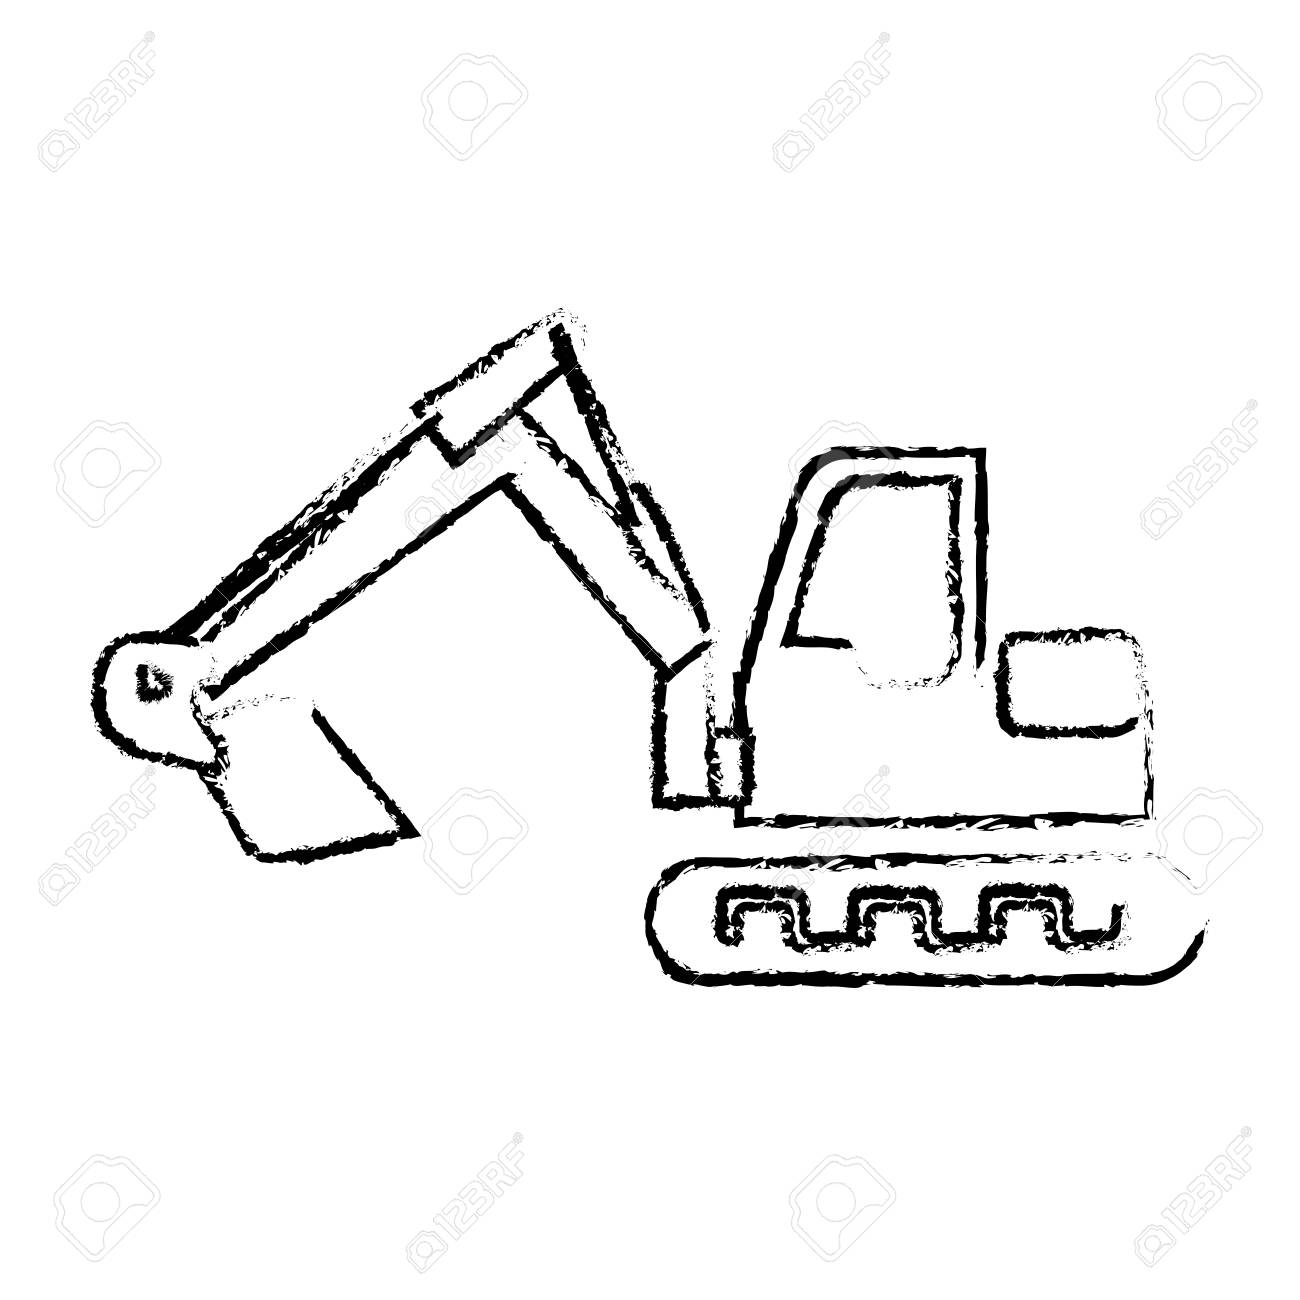 1300x1300 Silhouette Sketch Blurred Backhoe With Crane For Construction